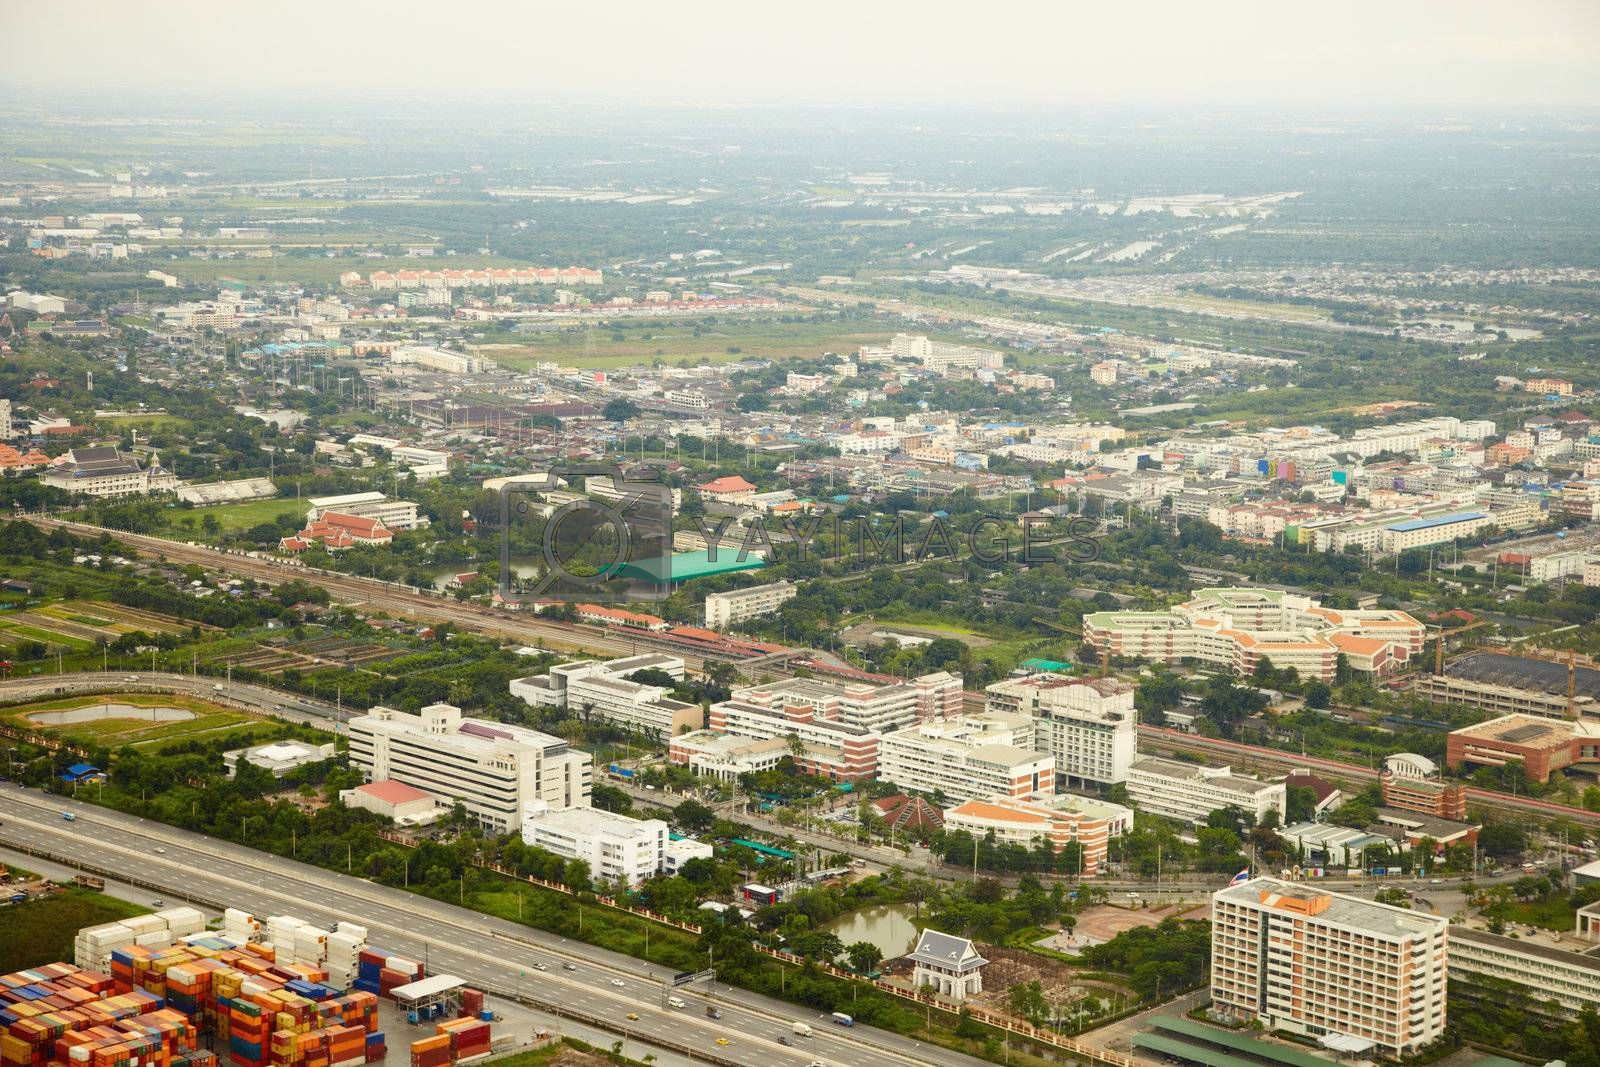 Outlying areas of Bangkok - view from plane